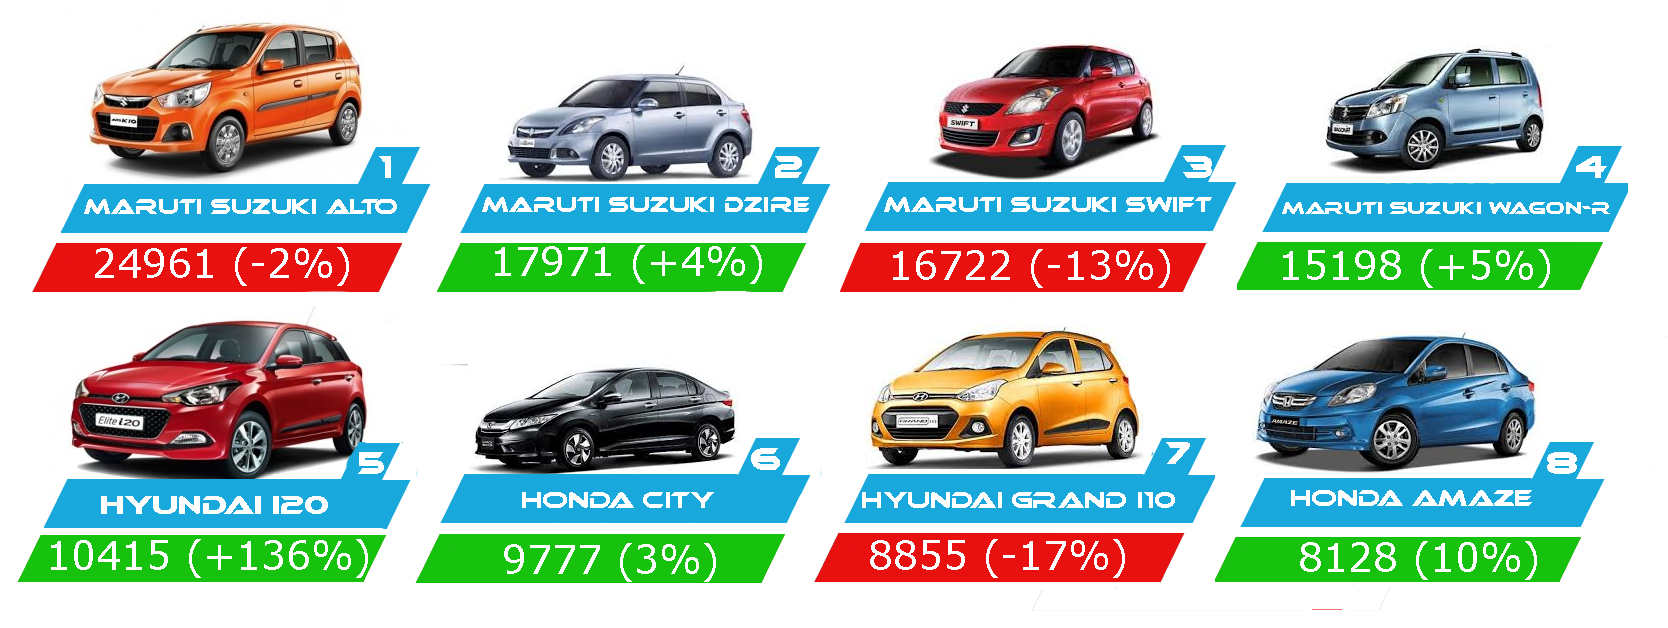 Top 10 Selling Cars By Sales In March 2015